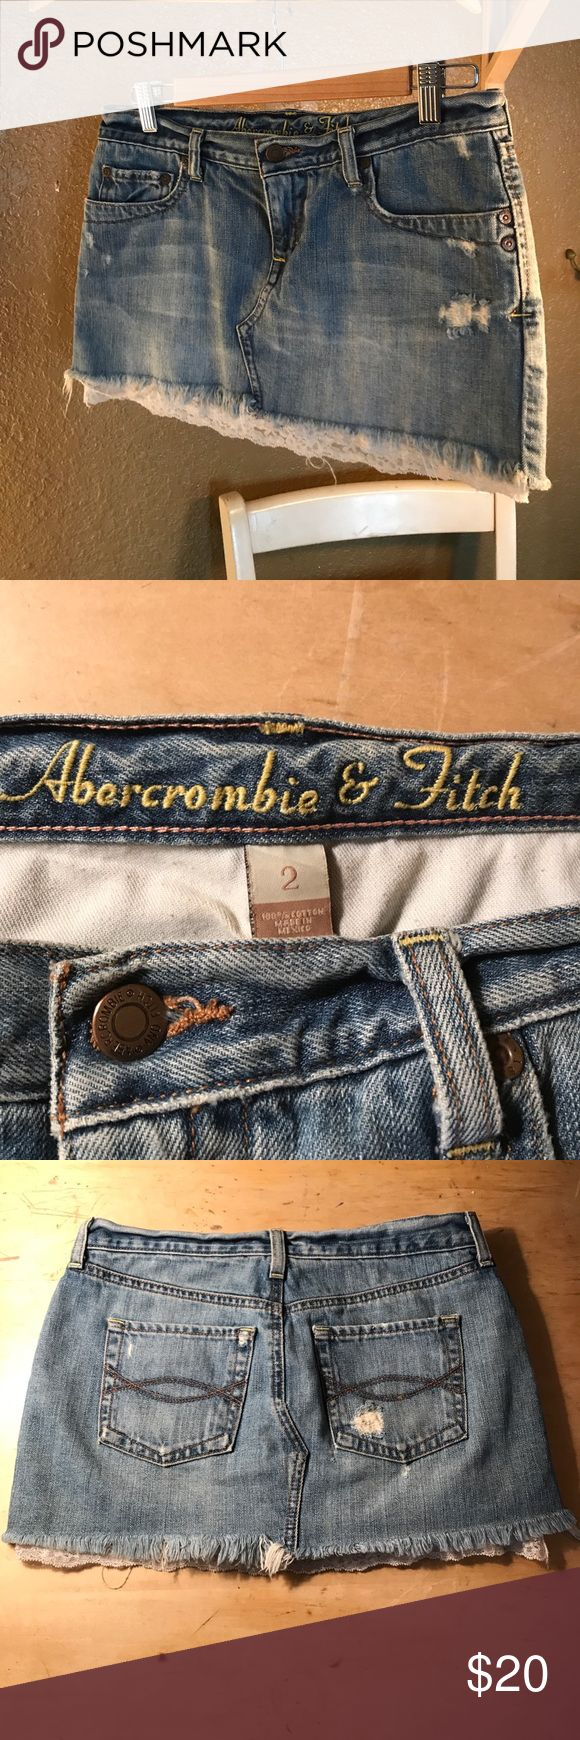 Women's size 2 Abercrombie and fitch jean skirt Like new condition! Size 2, jean skirt with lace bottom, super cute! No damage or signs of wear! From Abercrombie and Fitch! Abercrombie & Fitch Skirts